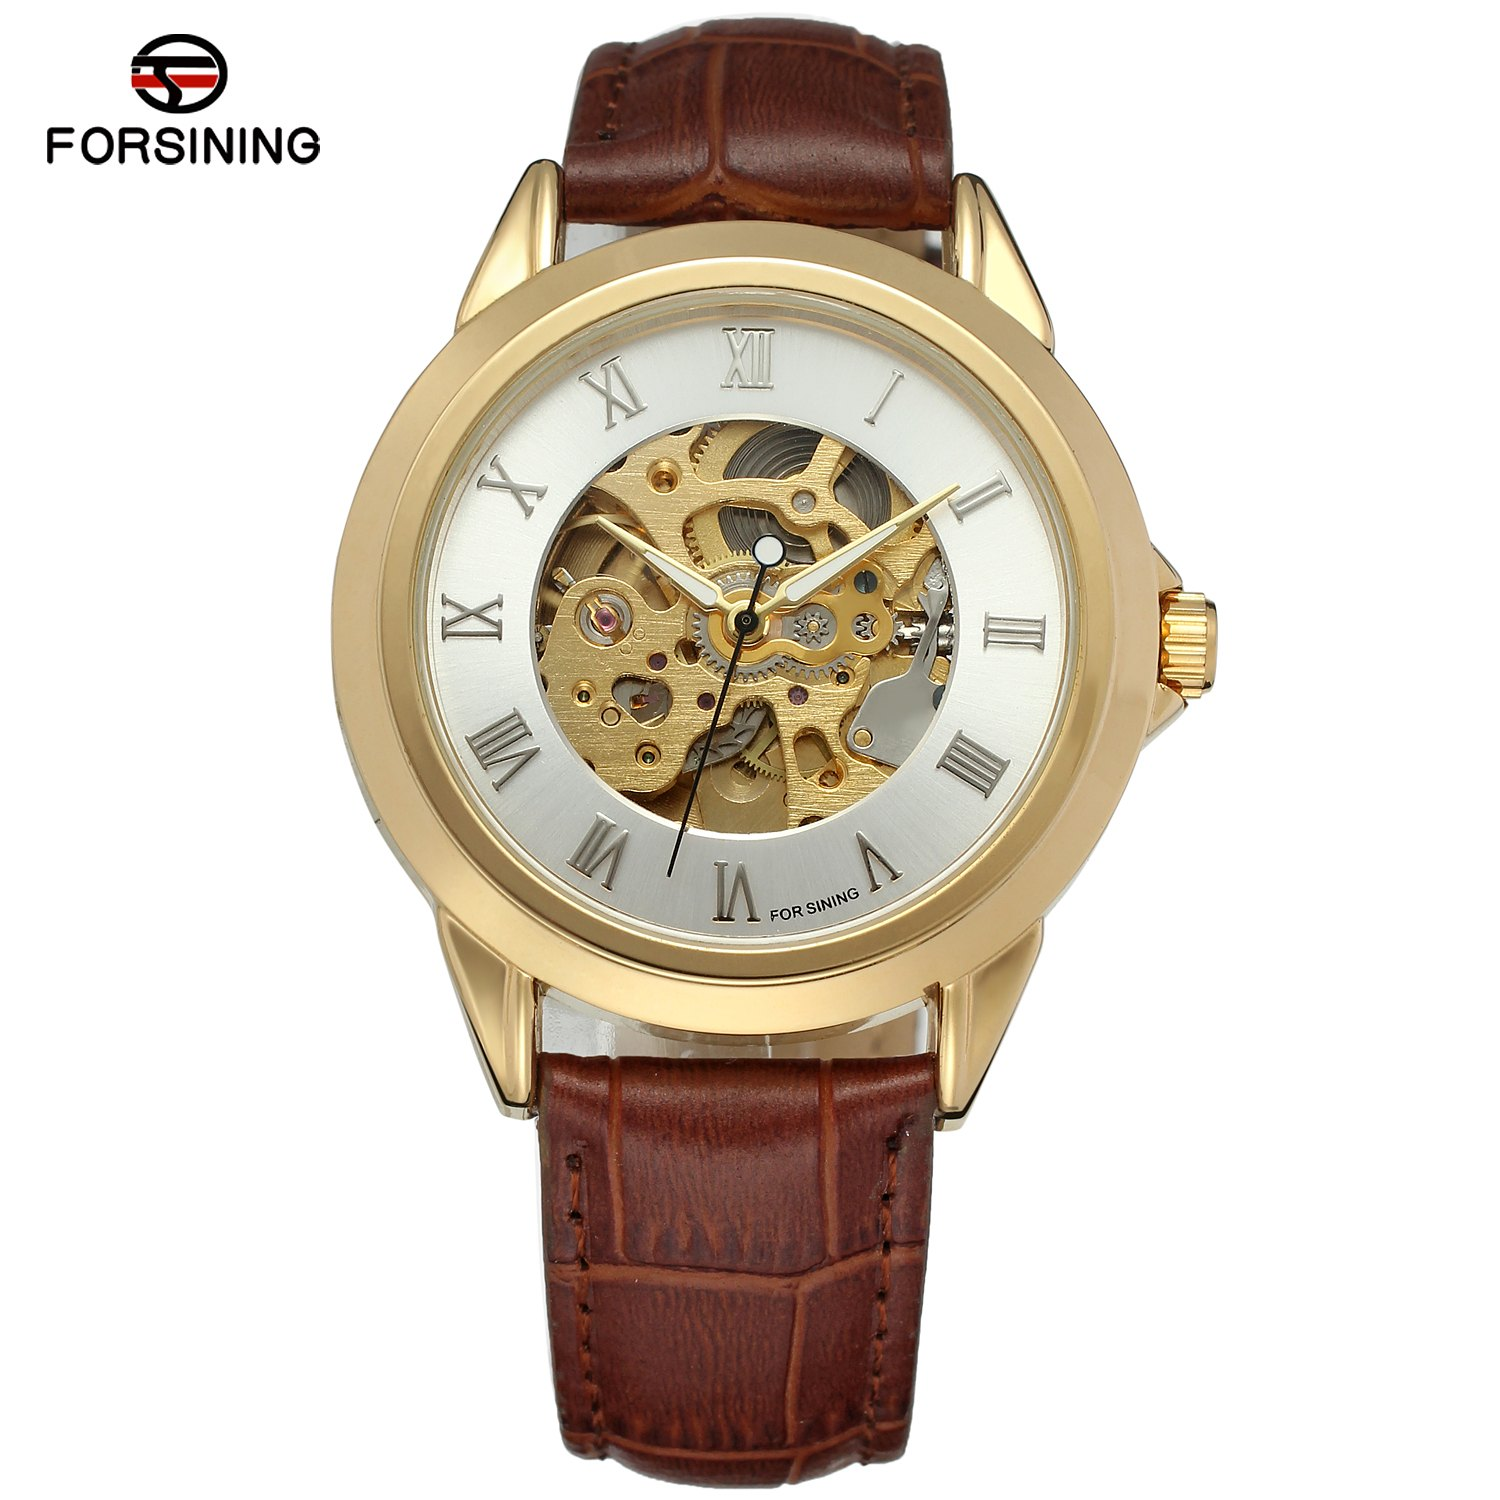 FORSINING Men Watches Top Brand Luxury Roman Numerals Gold Case Leather Strap Automatic Mechanical Skeleton Dress Wrist Watch forsining top luxury brand rose gold skeleton clock uhren automatic mechanical watches men business leather watch orologio uomo